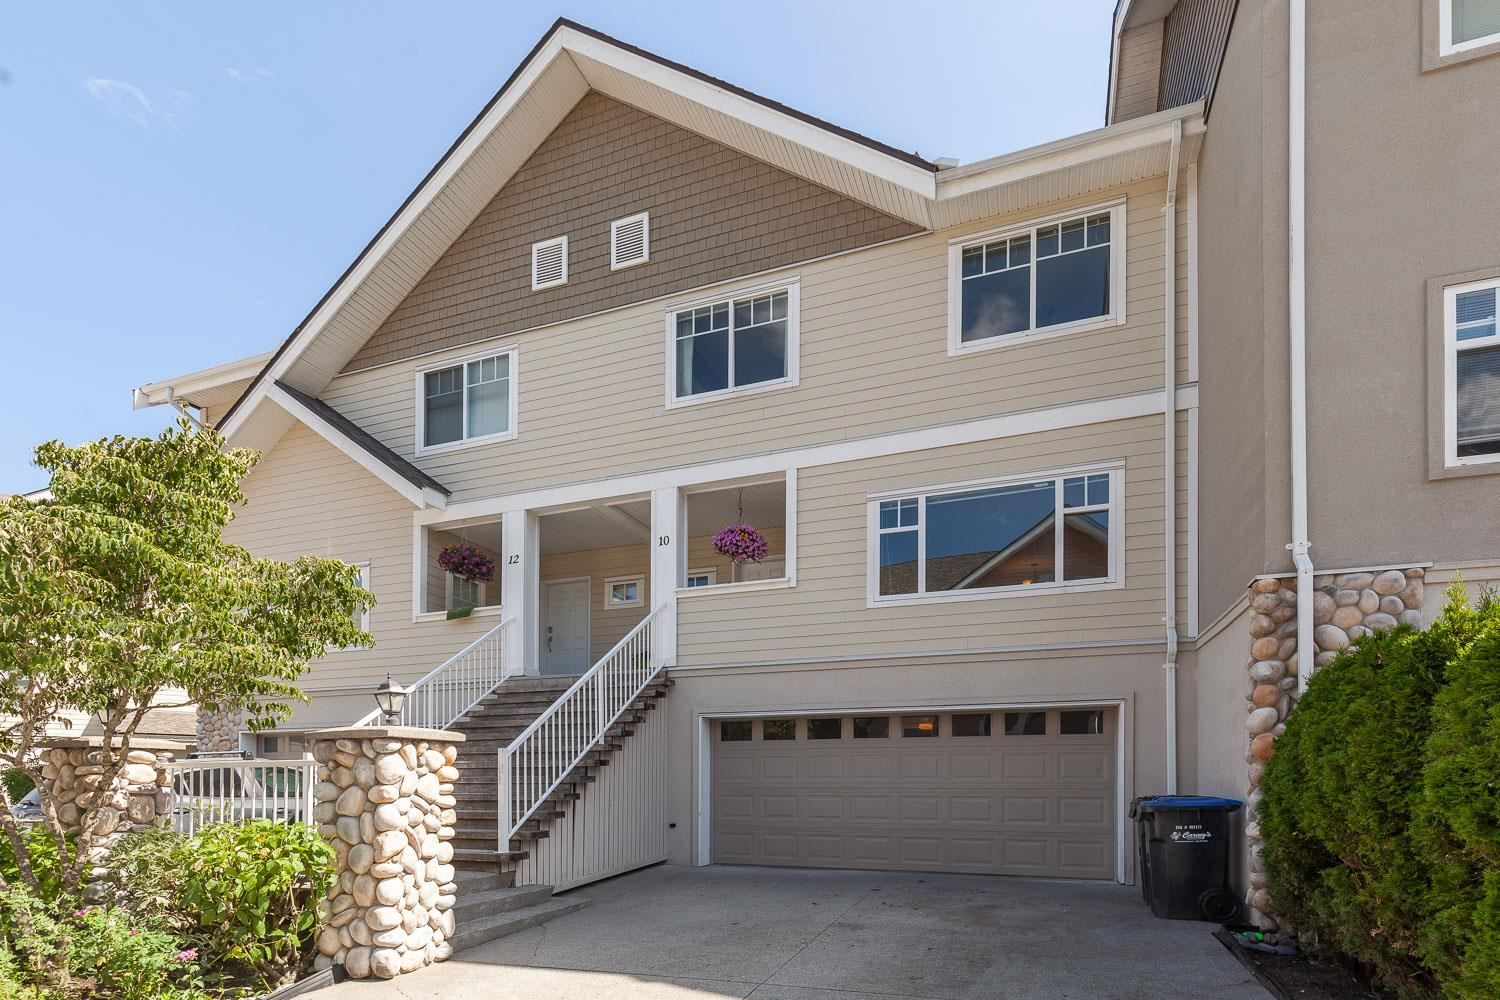 """Main Photo: 10 1200 EDGEWATER Drive in Squamish: Northyards Townhouse for sale in """"Edgewater"""" : MLS®# R2603917"""